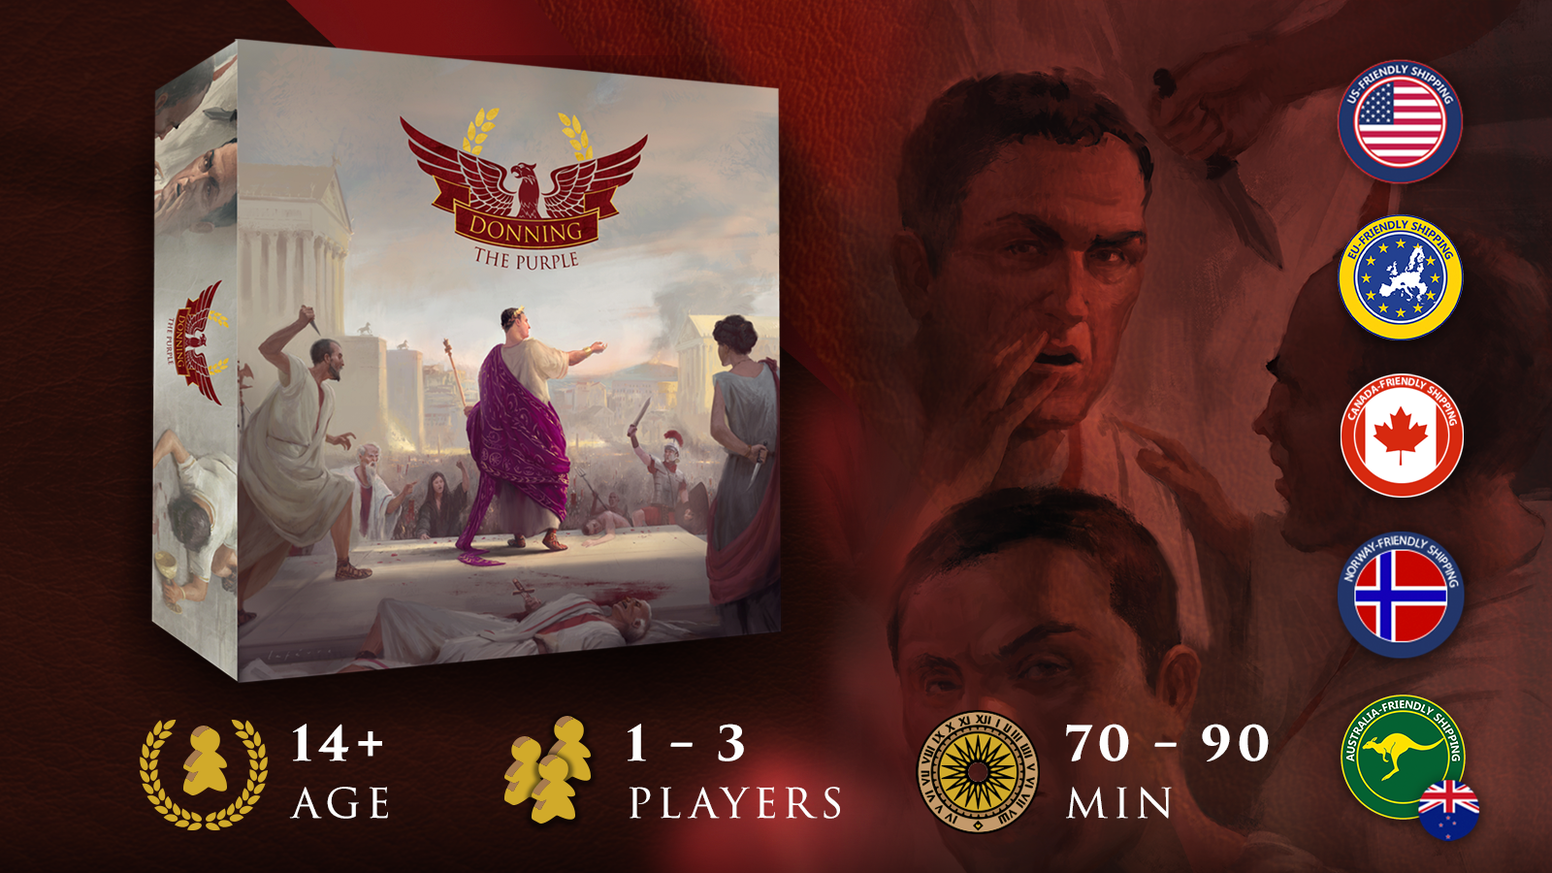 How would you rule the Roman empire?  Show your true colors in this asymmetrical king of the hill game for 1-3 players.